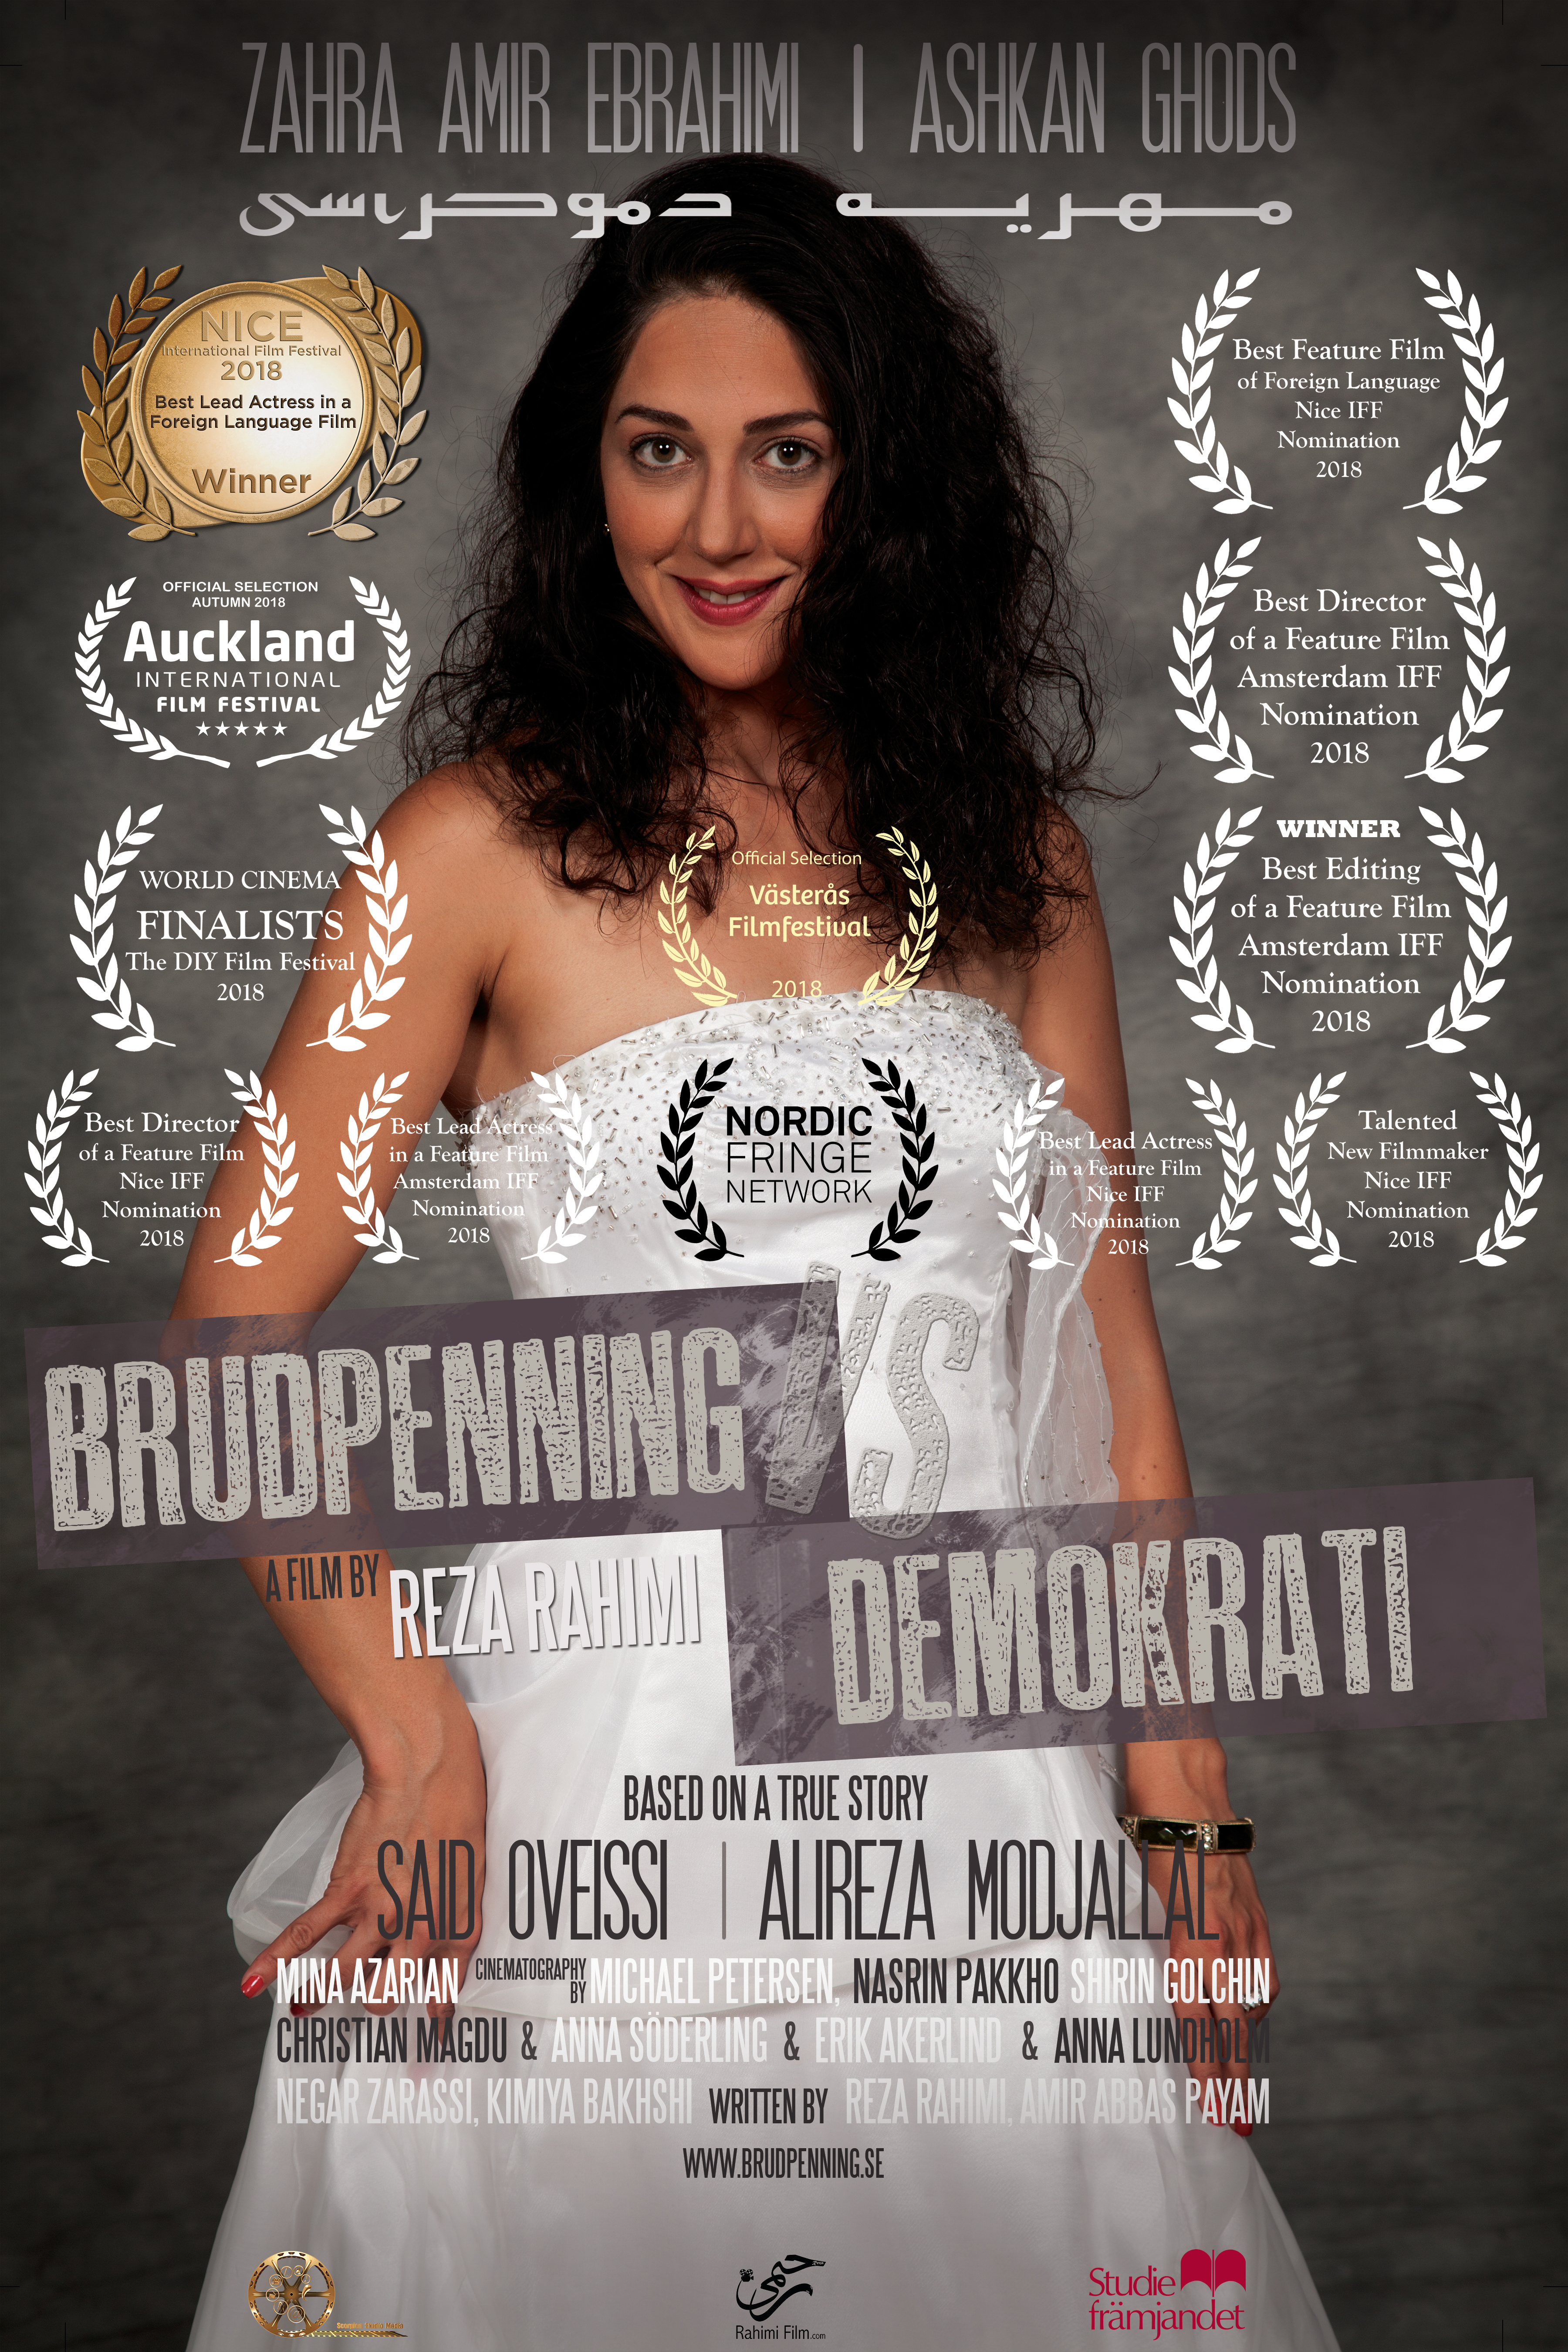 Brudpenning_Poster_3_Bride Price